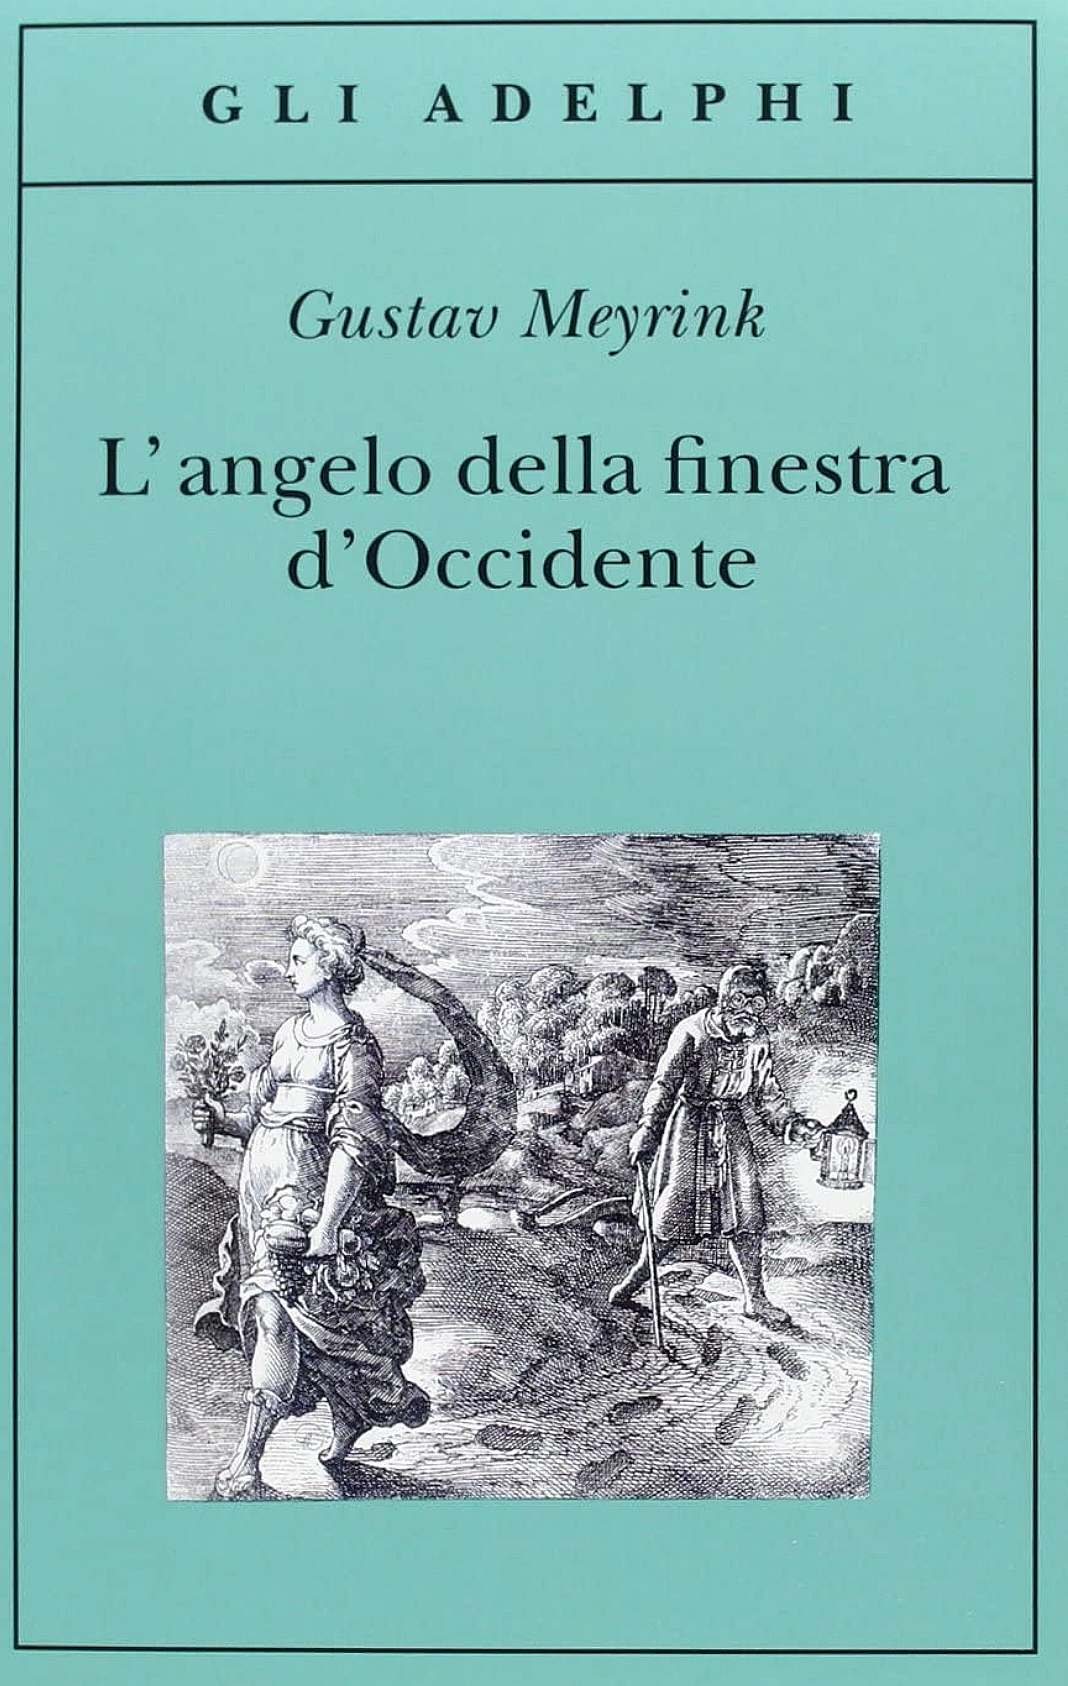 L'angelo della finestra d'Occidente